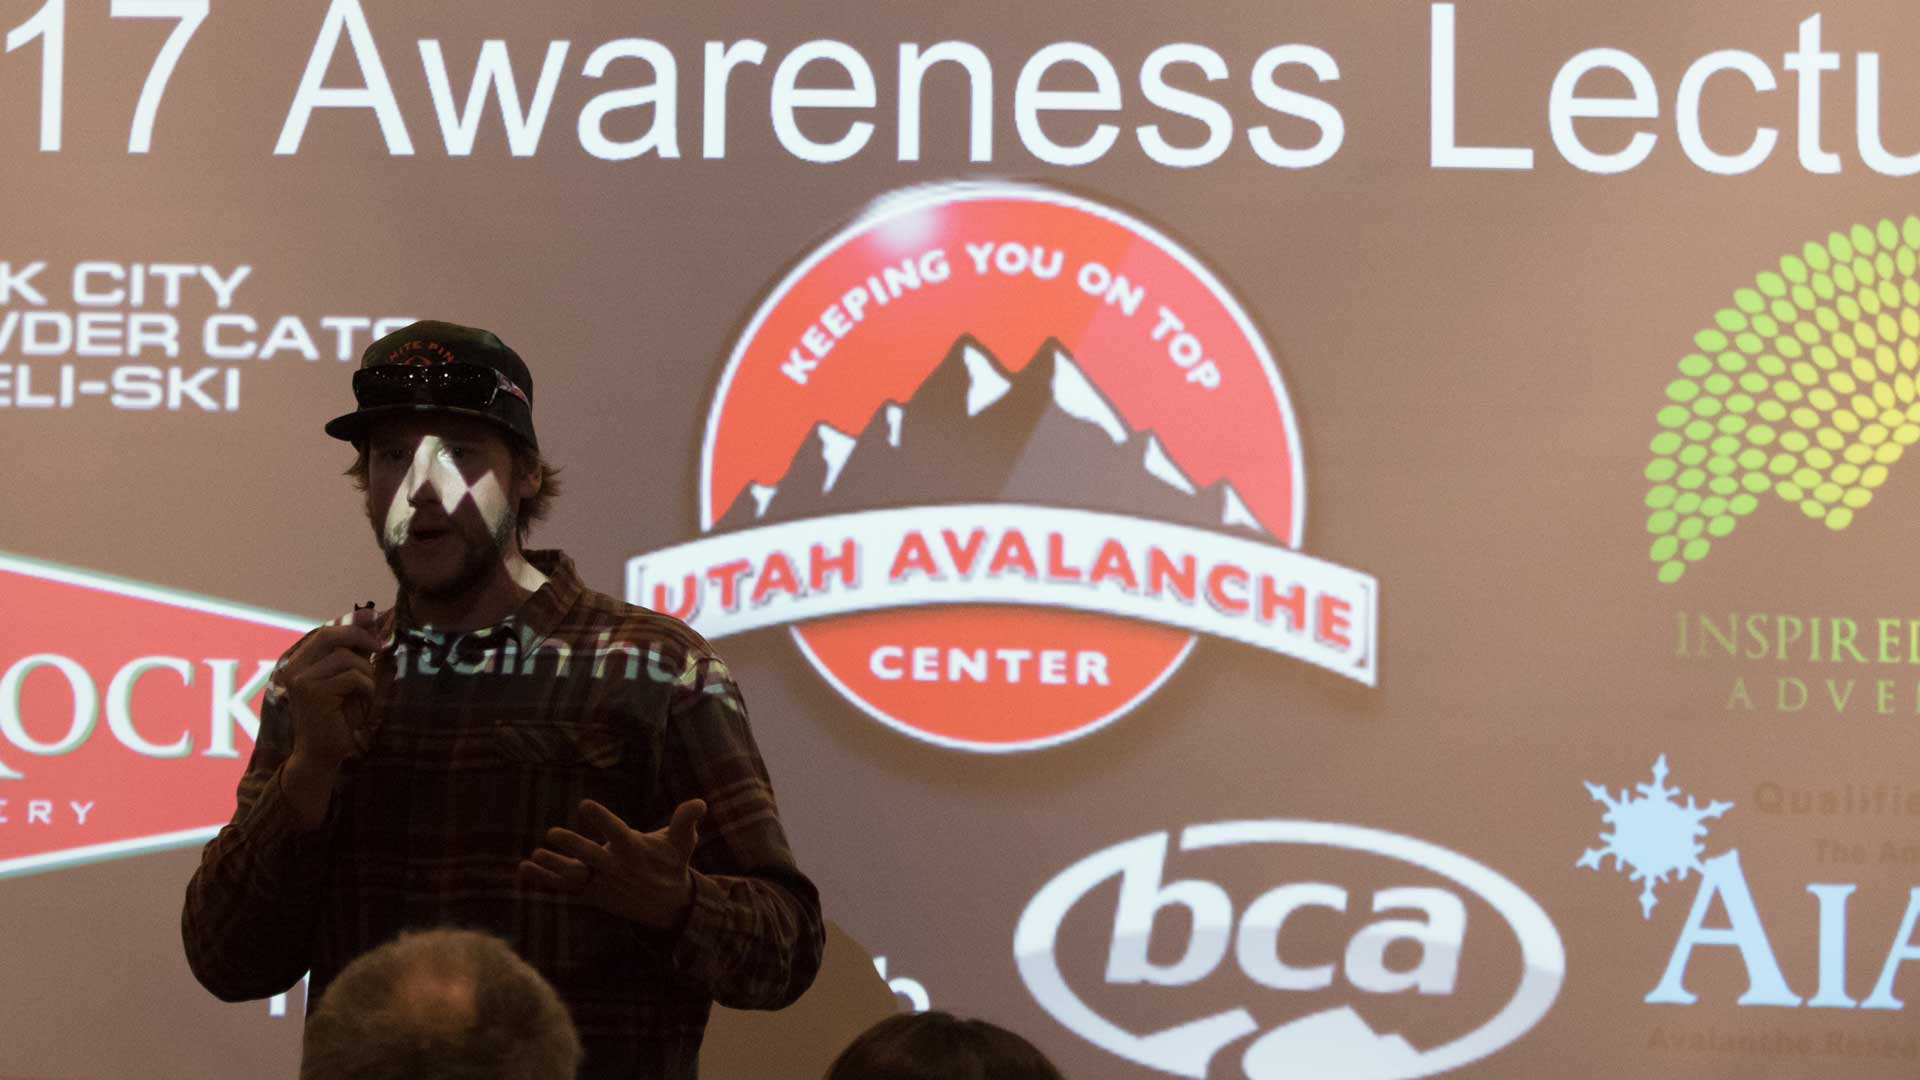 Free Avalanche Awareness Lecture from White Pine Touring in Park City, UT.